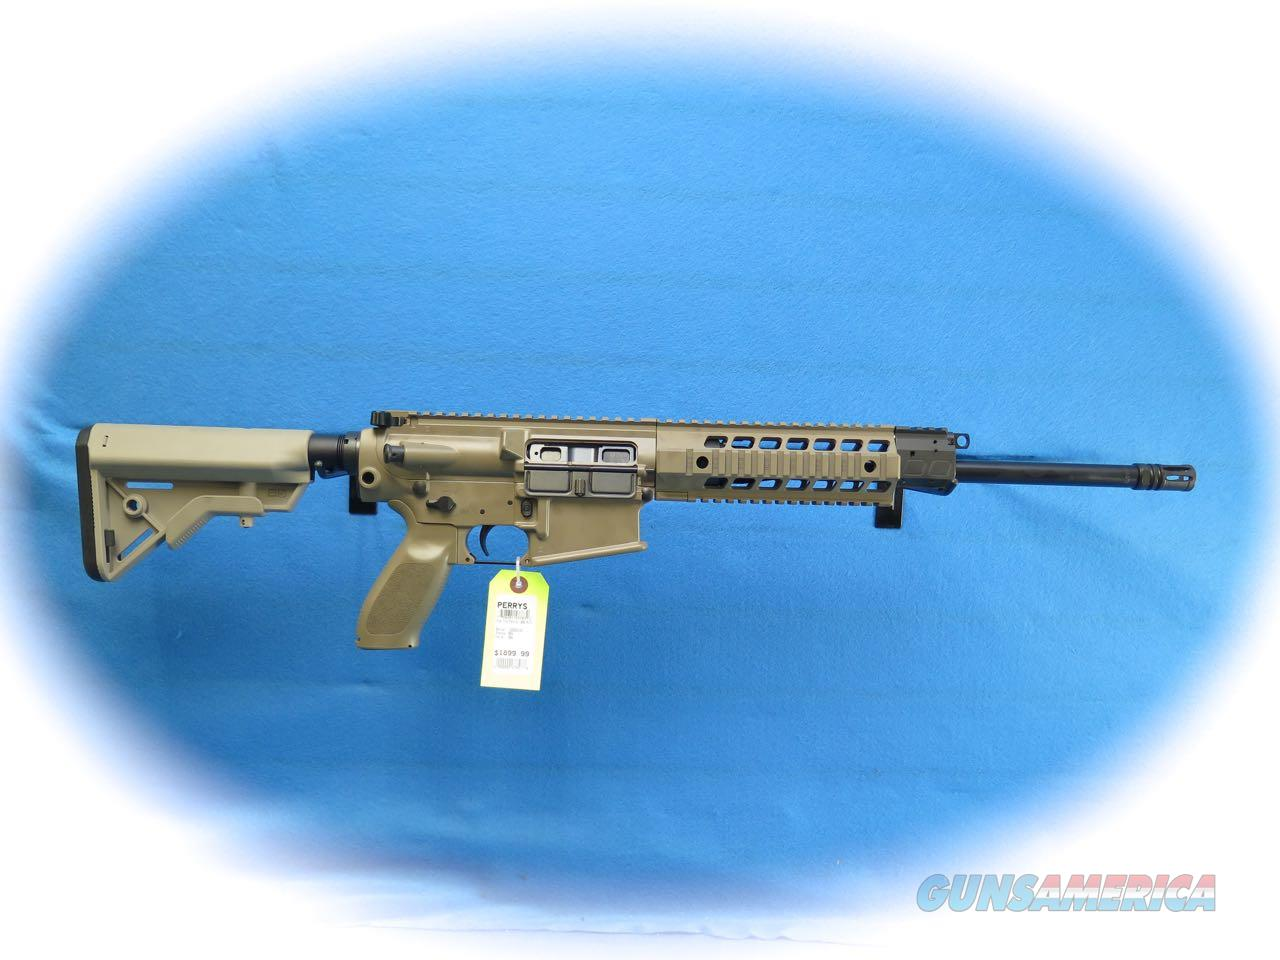 Sig Sauer SIG716 Patrol FDE Semi Auto Rifle 7.62MM Nato Cal **New**  Guns > Rifles > Sig - Sauer/Sigarms Rifles